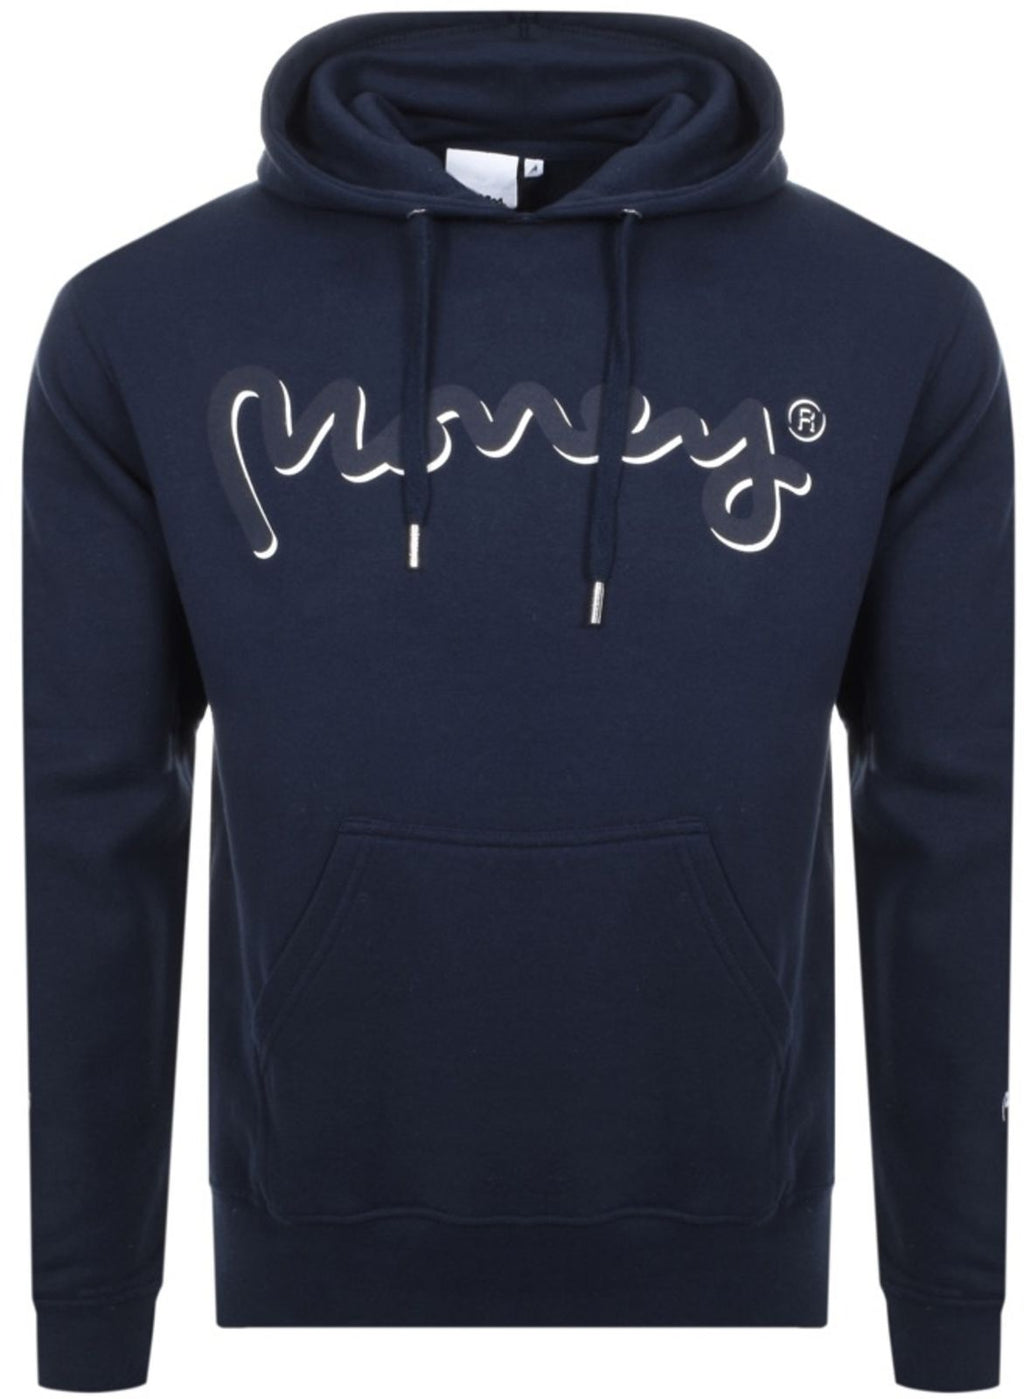 Money Shadow Sig Ape Hooded Tracksuit Blue